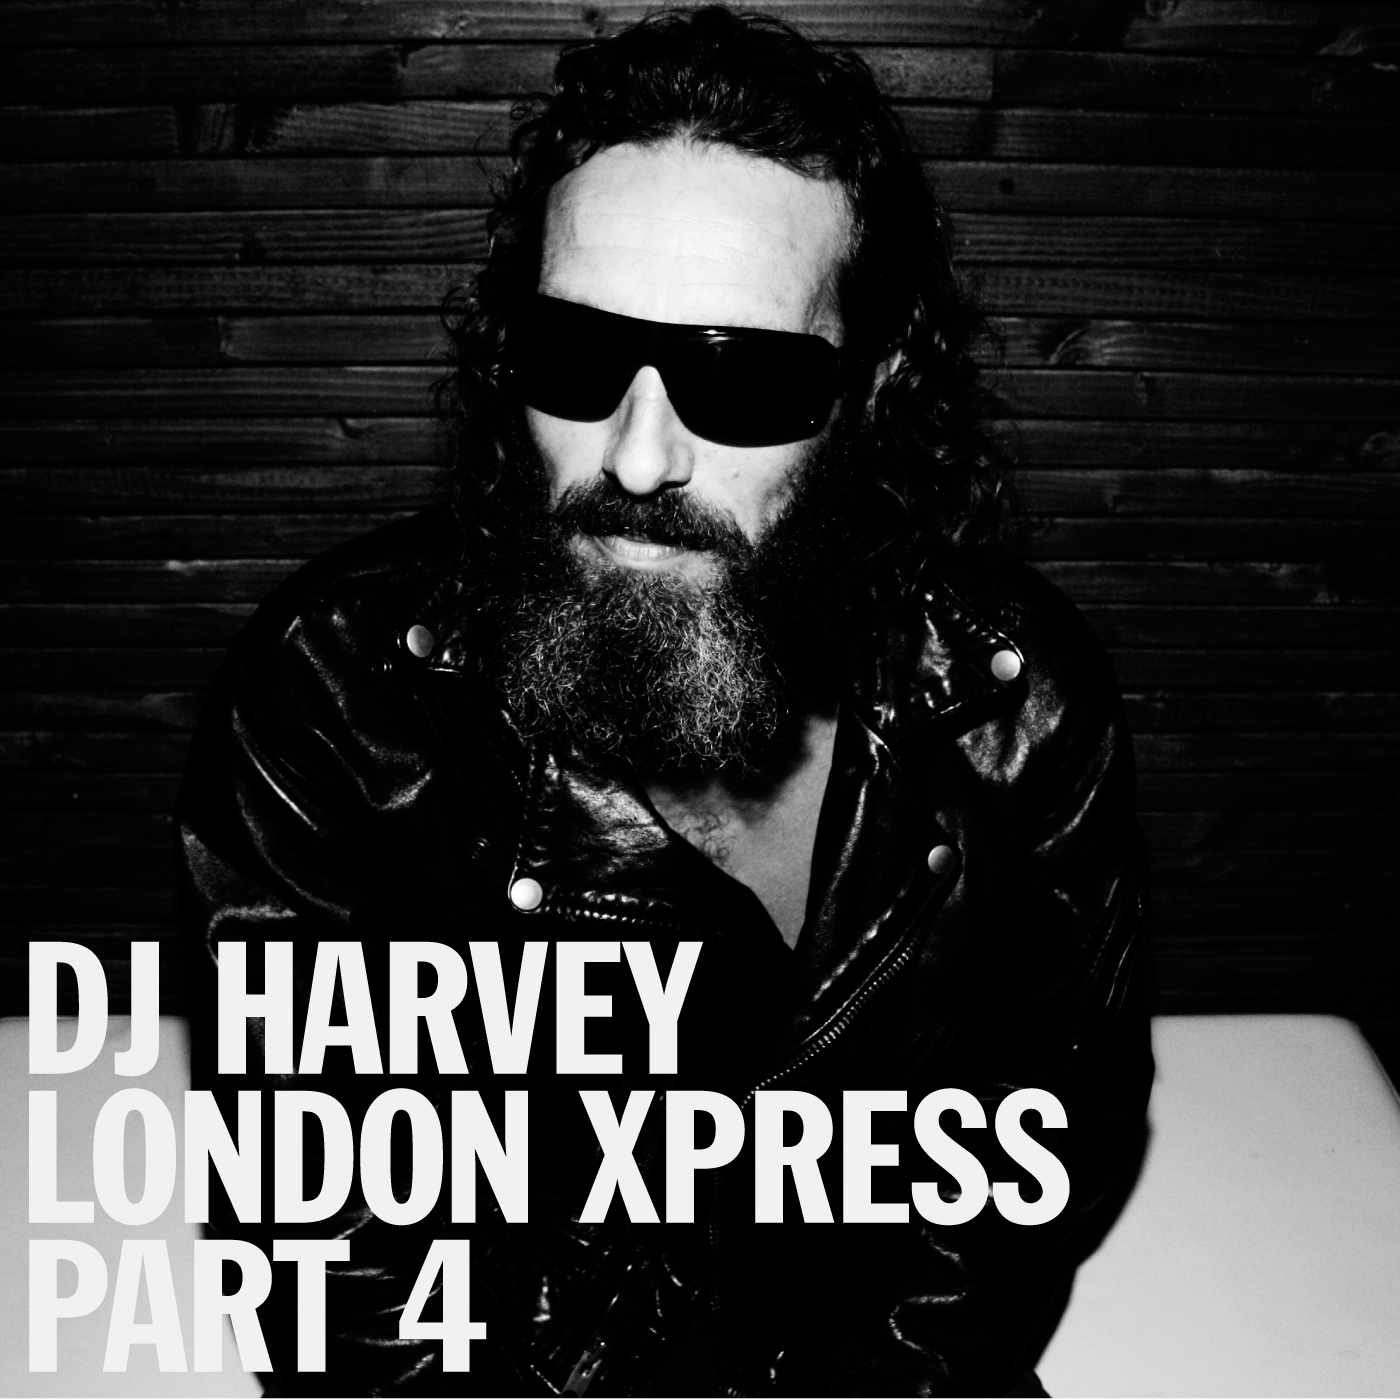 Dj Harvey, Radio Show, London Xpress, XFM, 2001, Disco, Party, Red Bull Tour